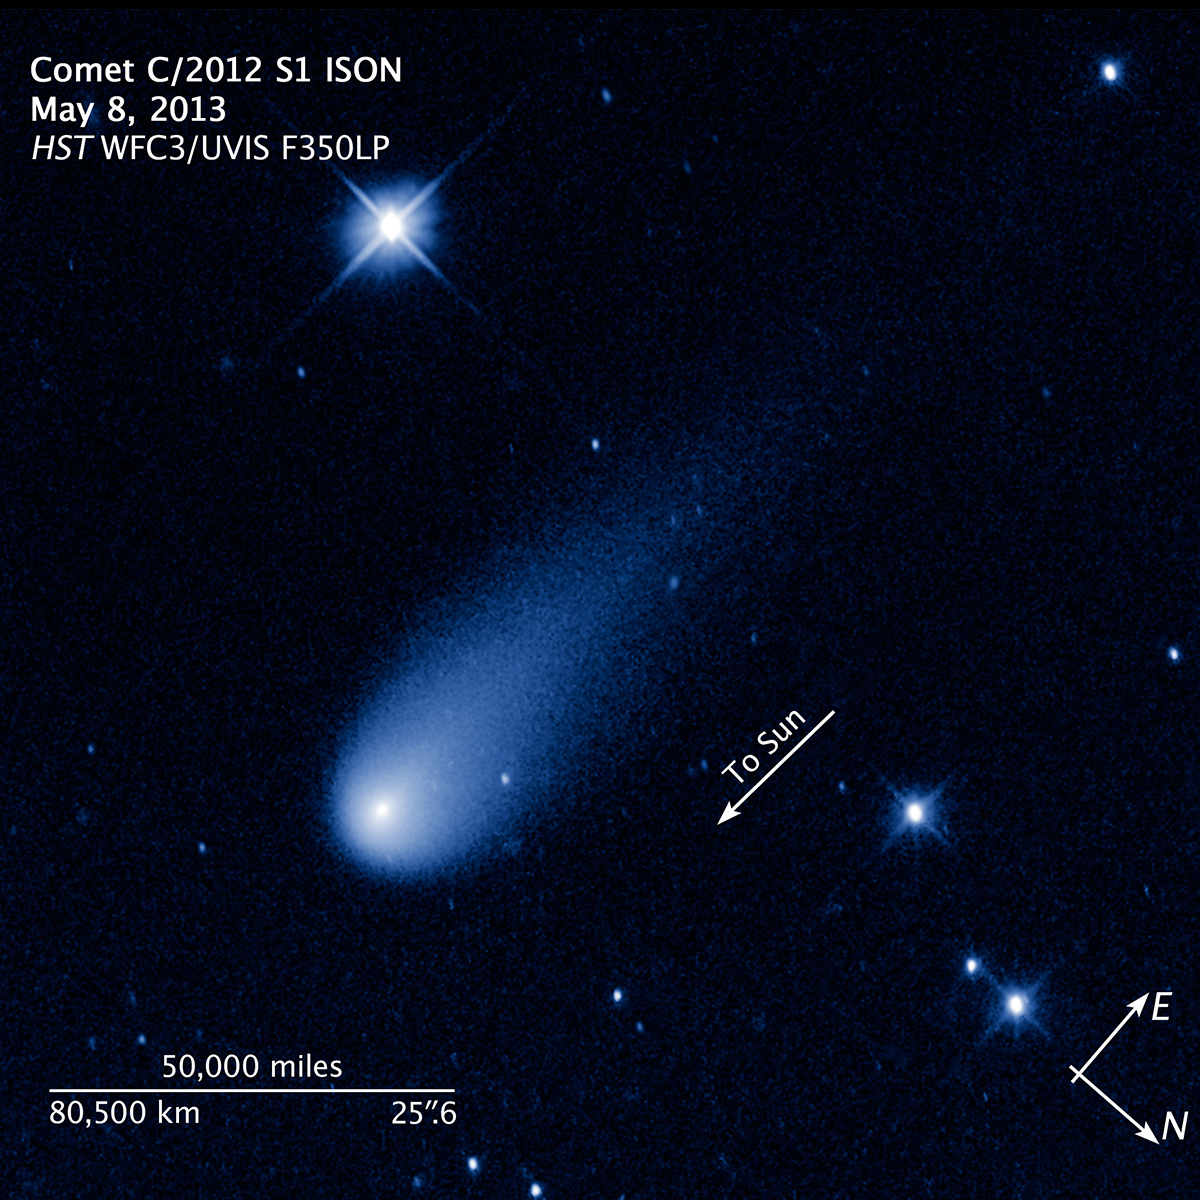 This false-color, visible-light image of comet ISON was taken with Hubble's Wide Field Camera 3.